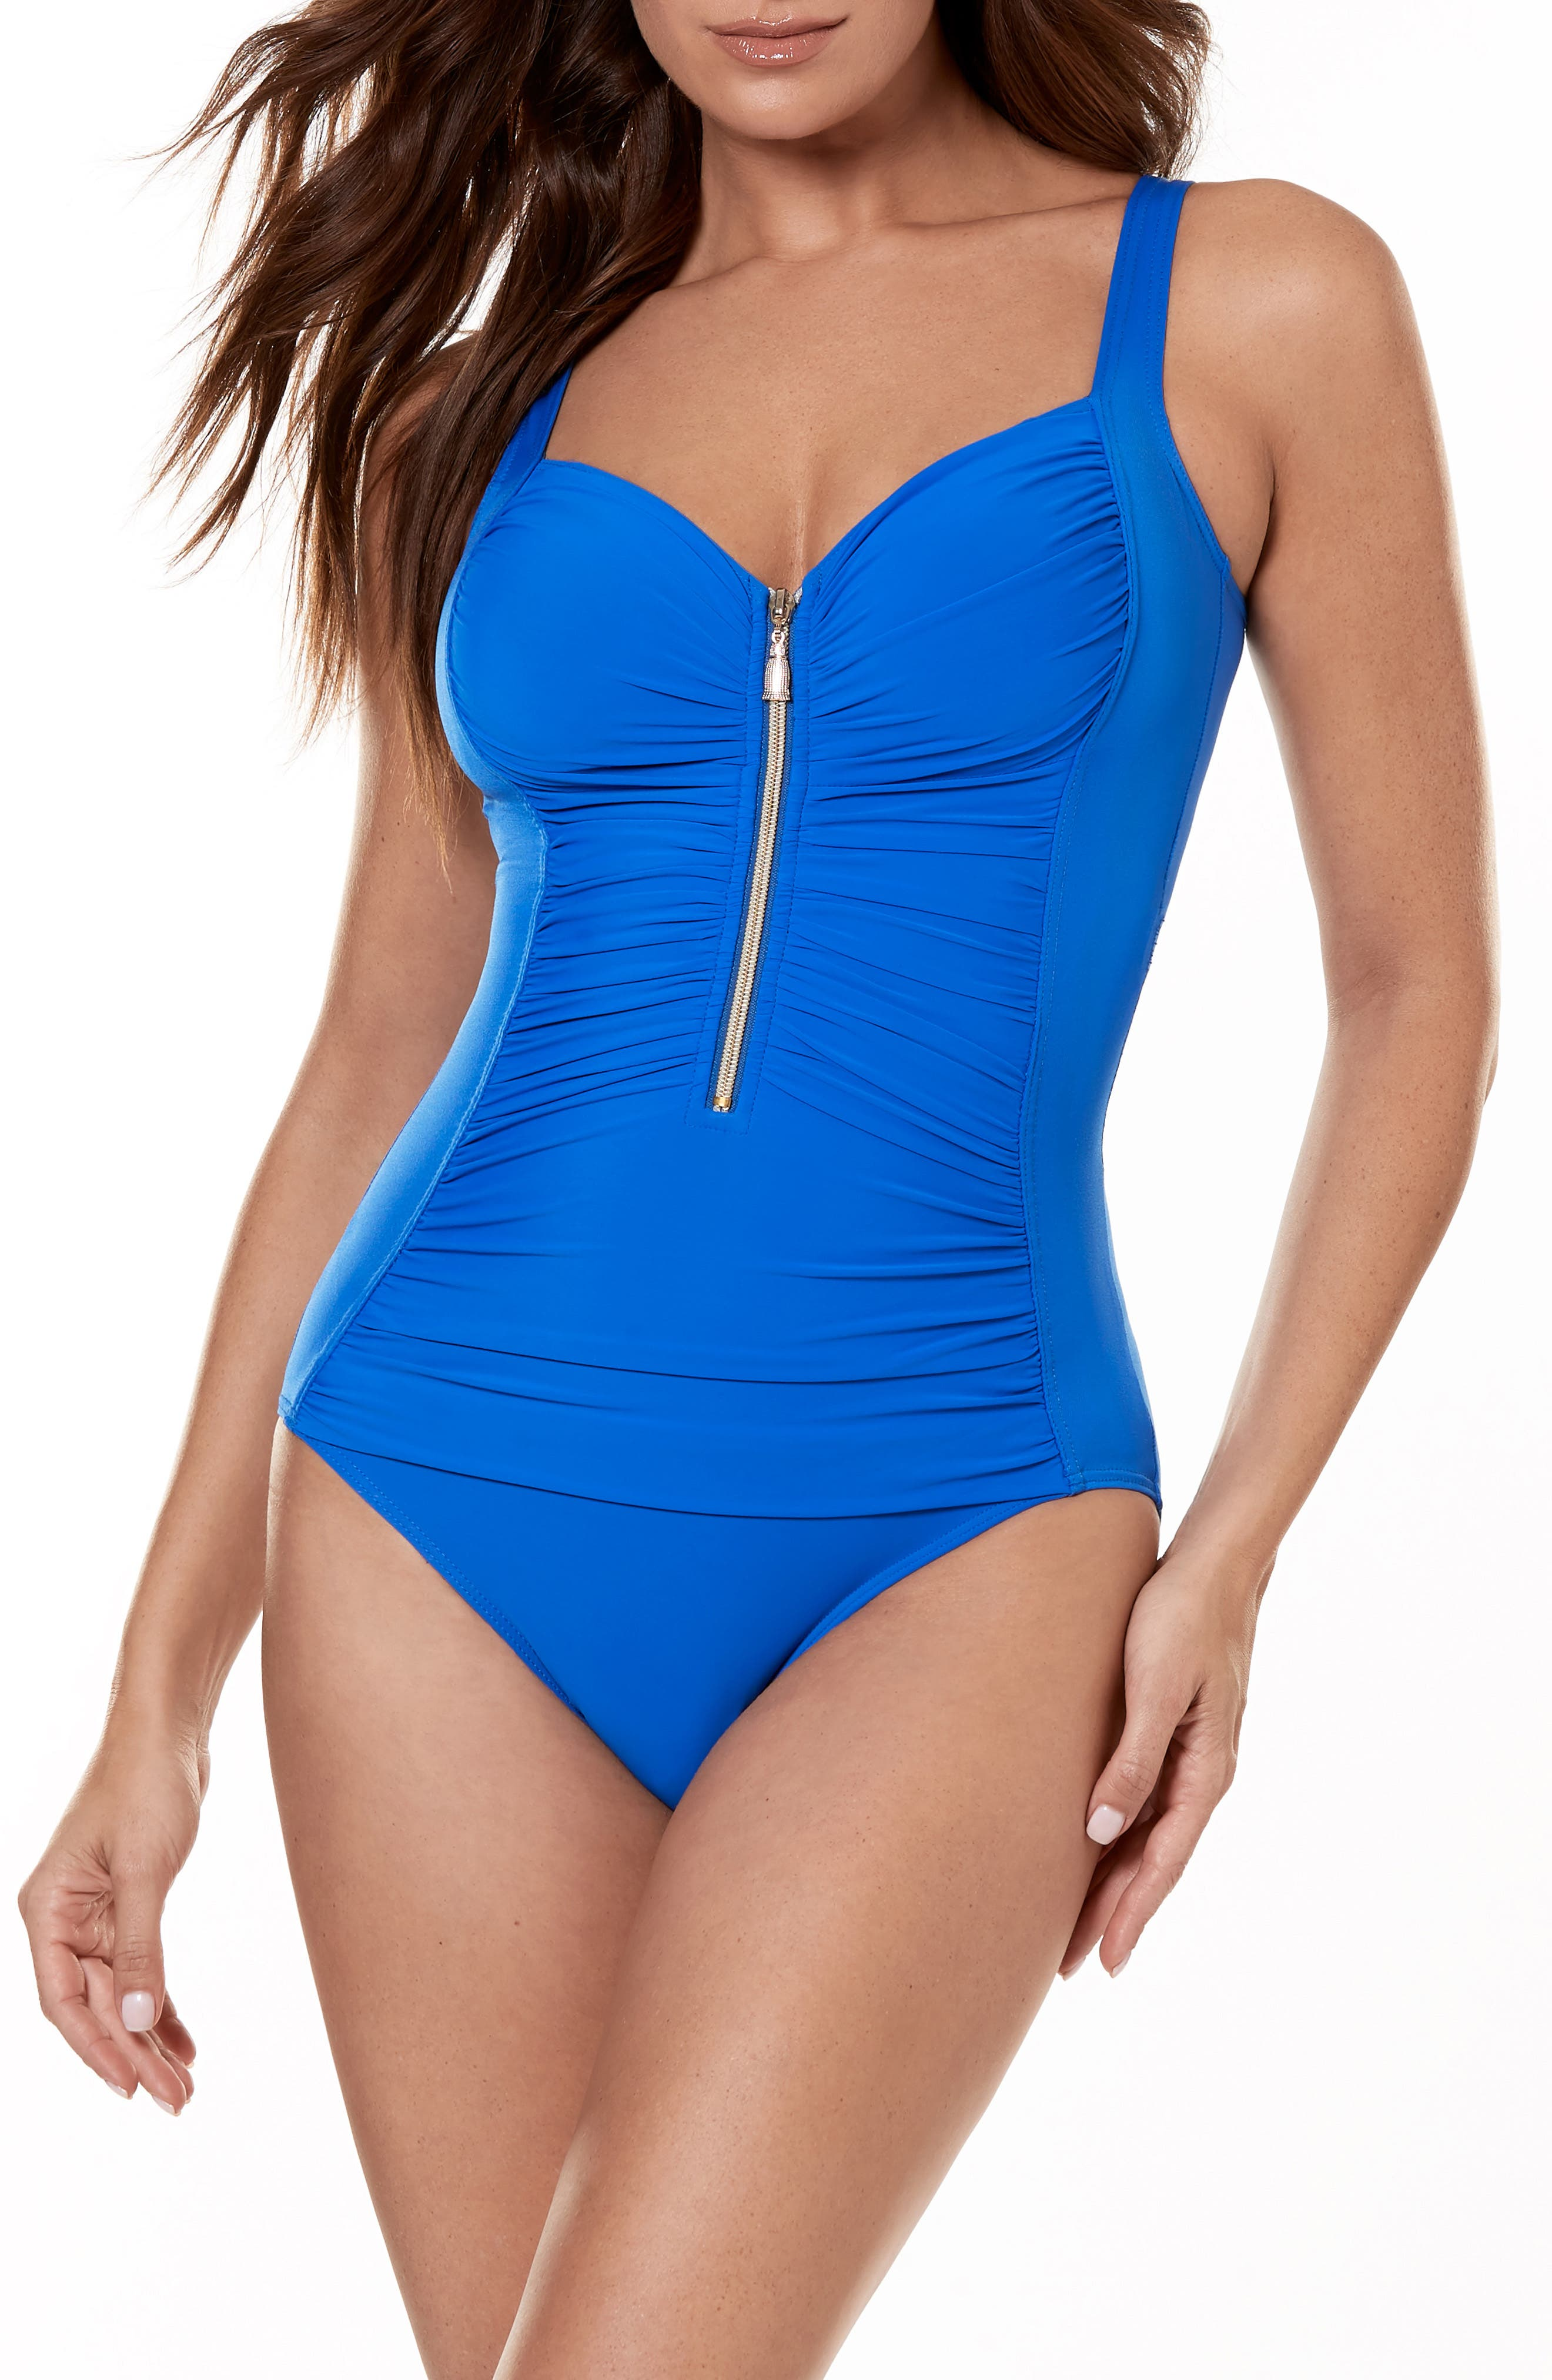 Miraclesuit So Riche Zip Code One-Piece Swimsuit